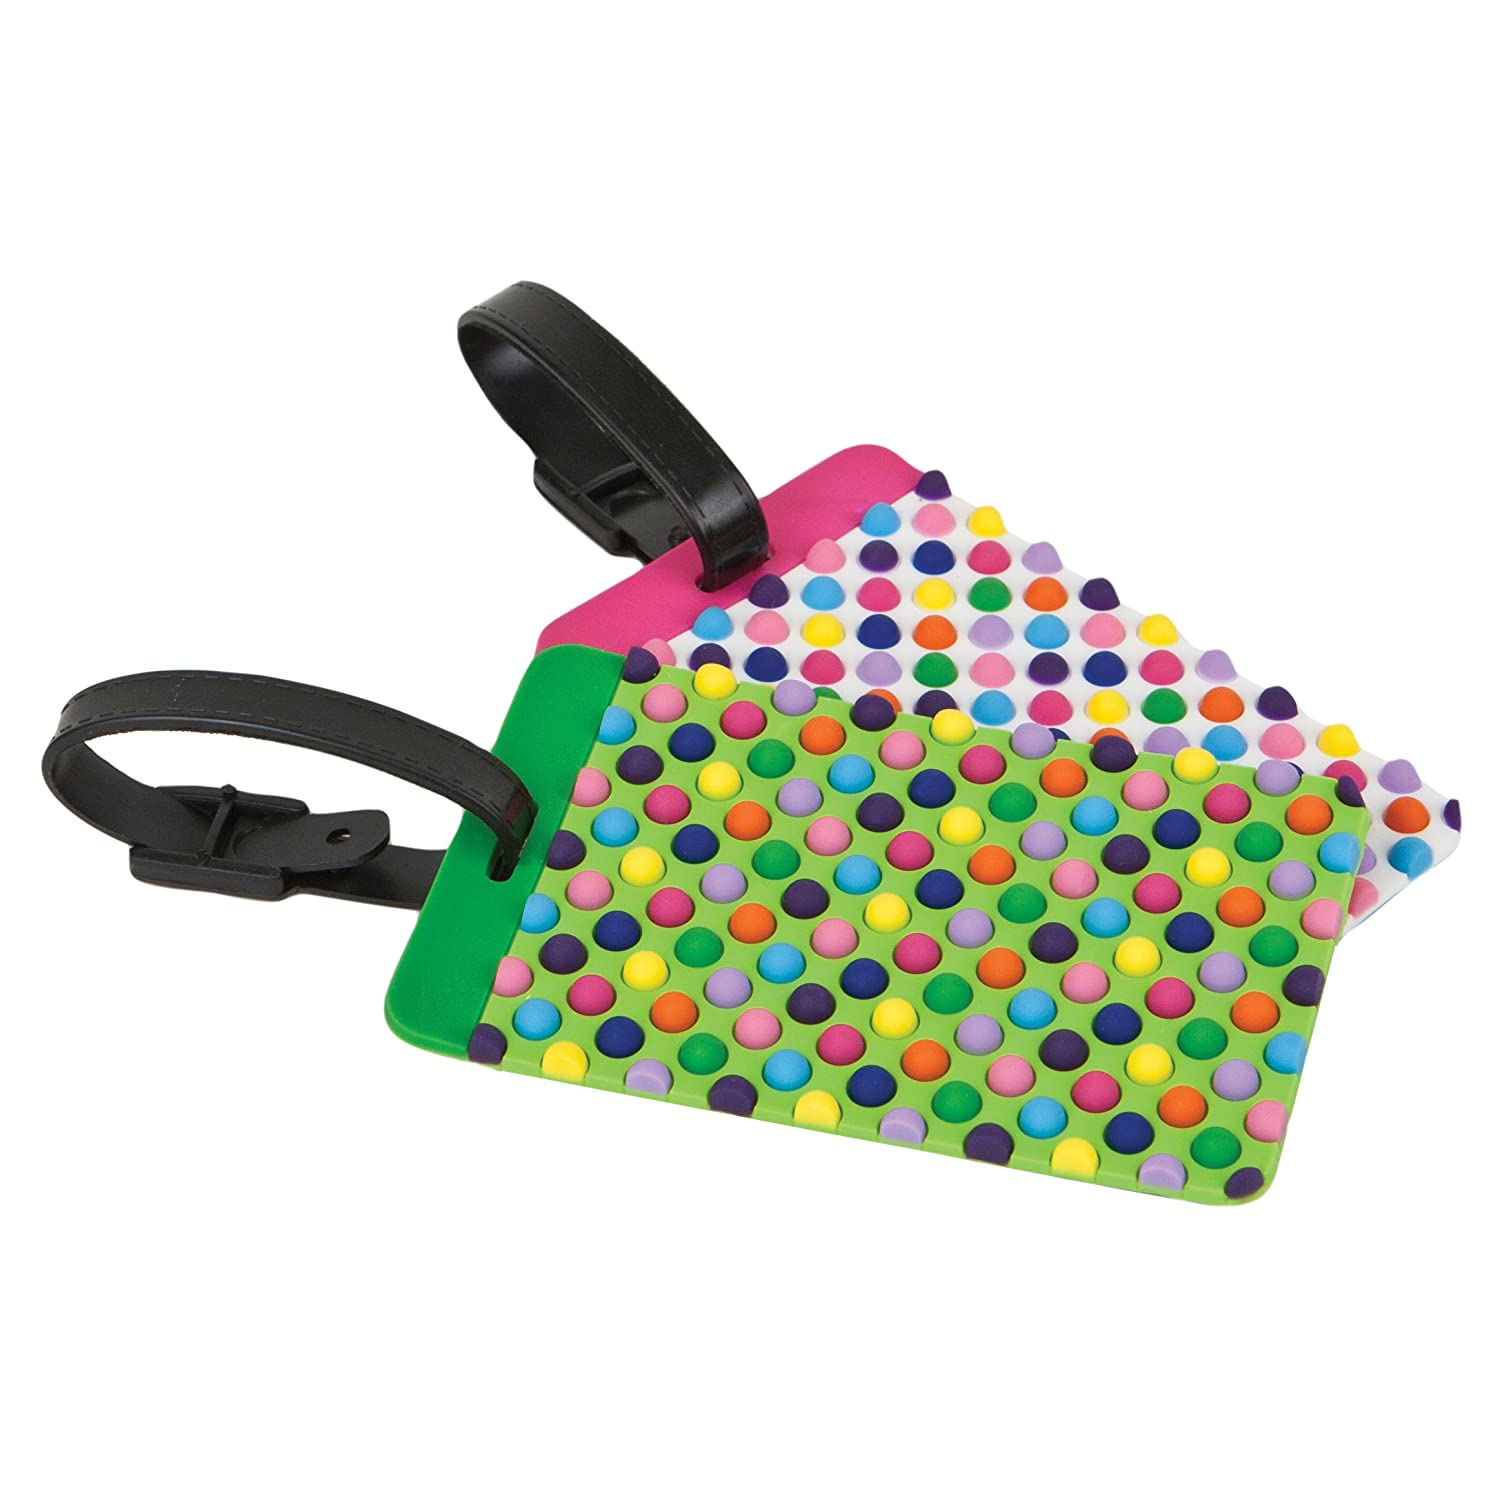 7720a94fff3d Travelon Set of 2 Luggage Tags, dots